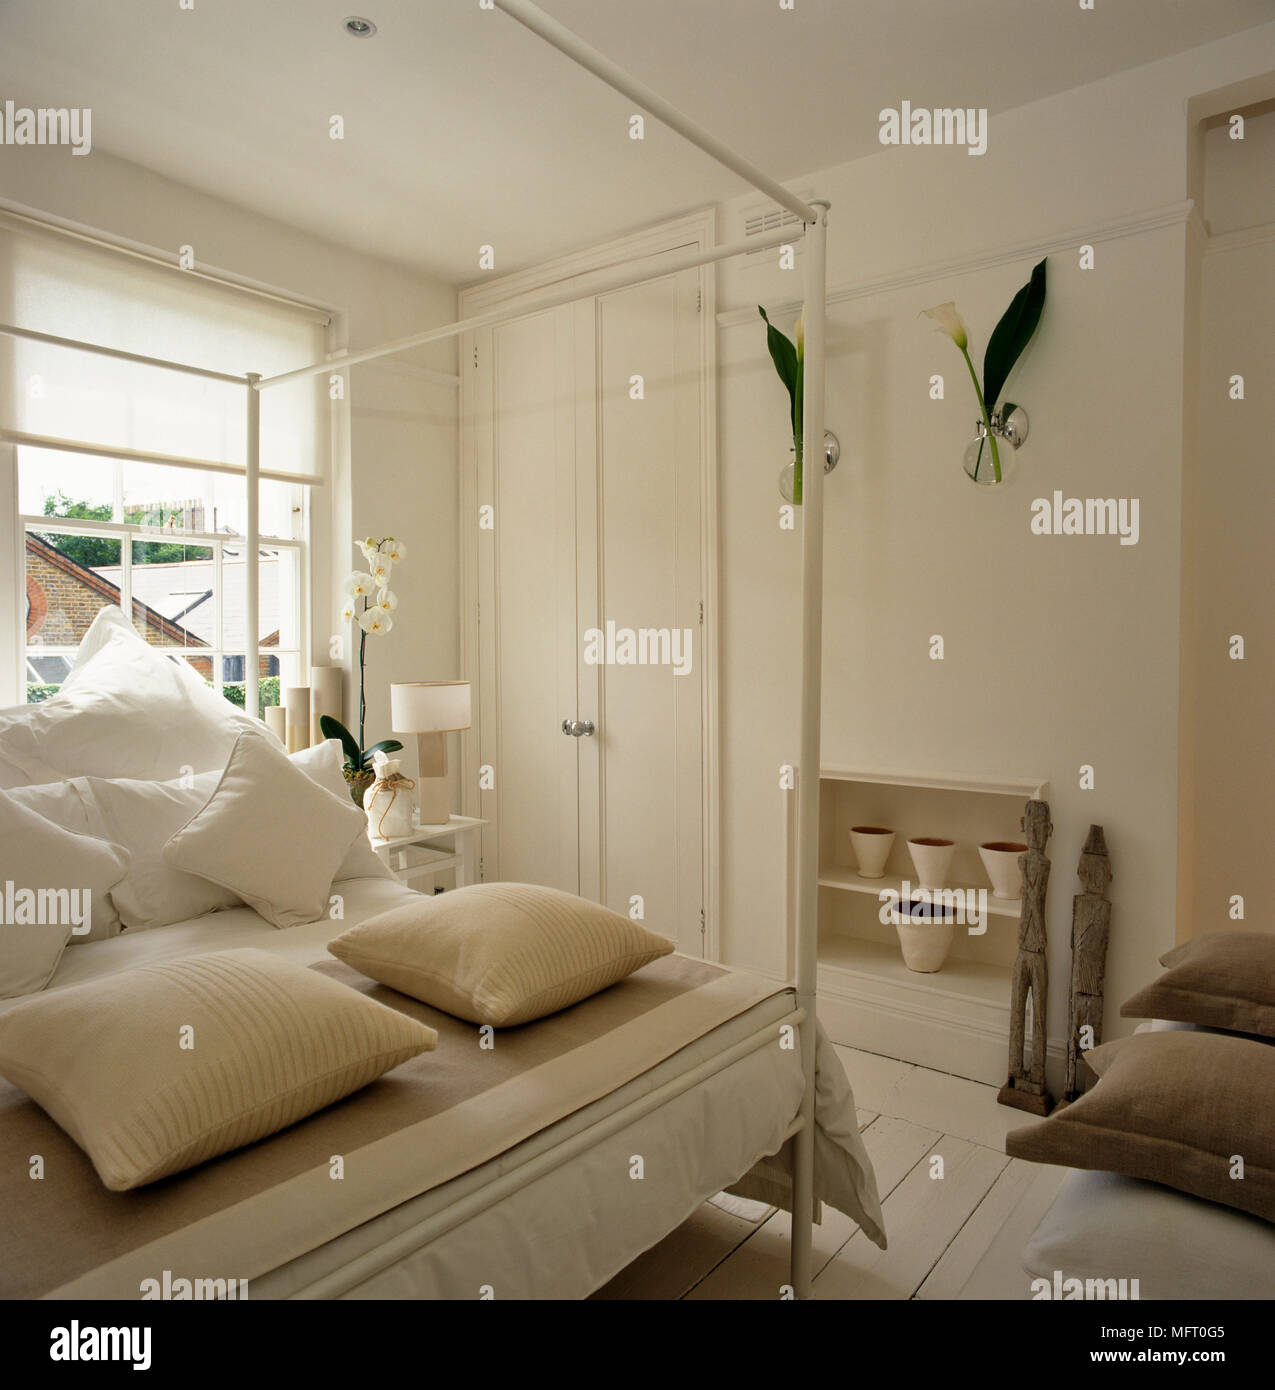 White Bedroom With Four Poster Bed And Cushions On Painted Floorboards Stock Photo Alamy